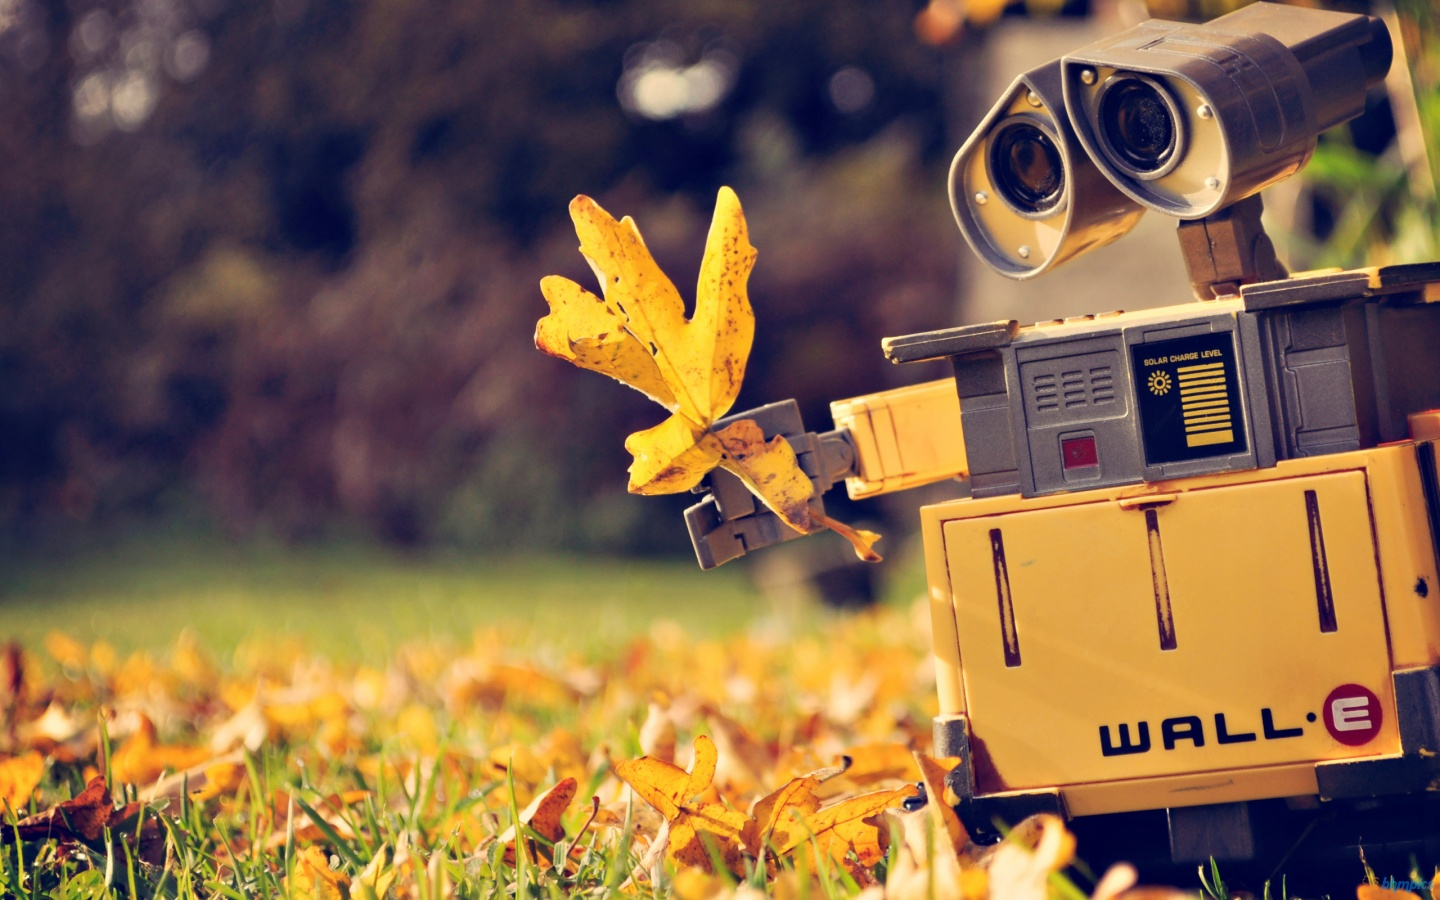 Cute Wall-E Wallpaper